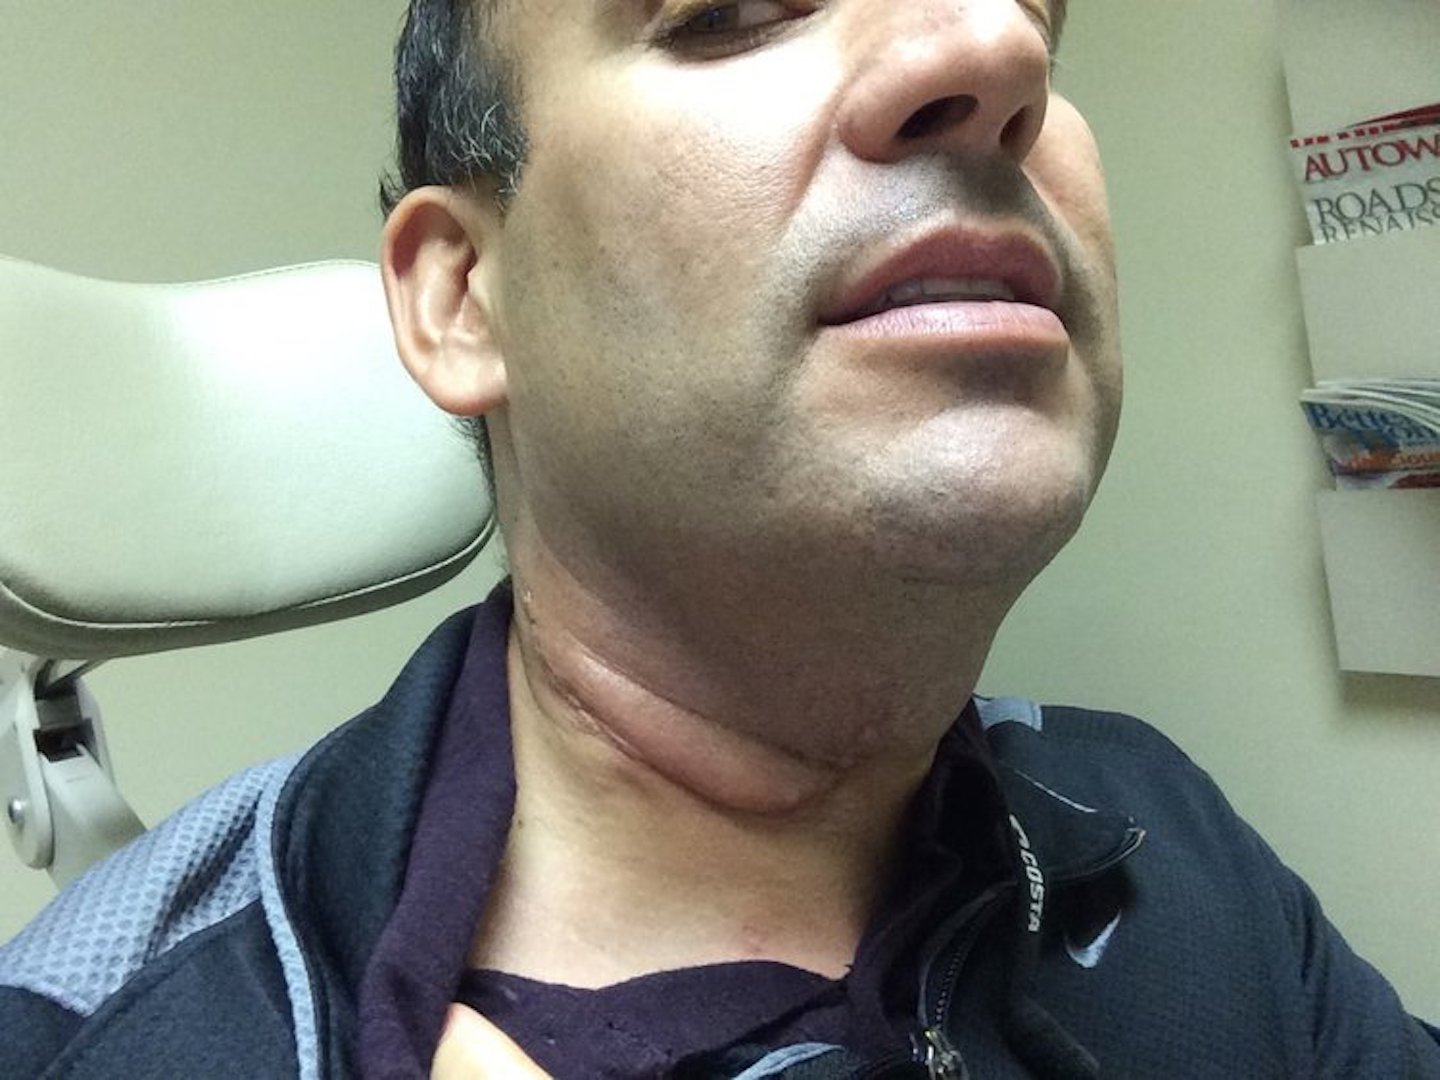 stages of hpv throat cancer hpv genital siil